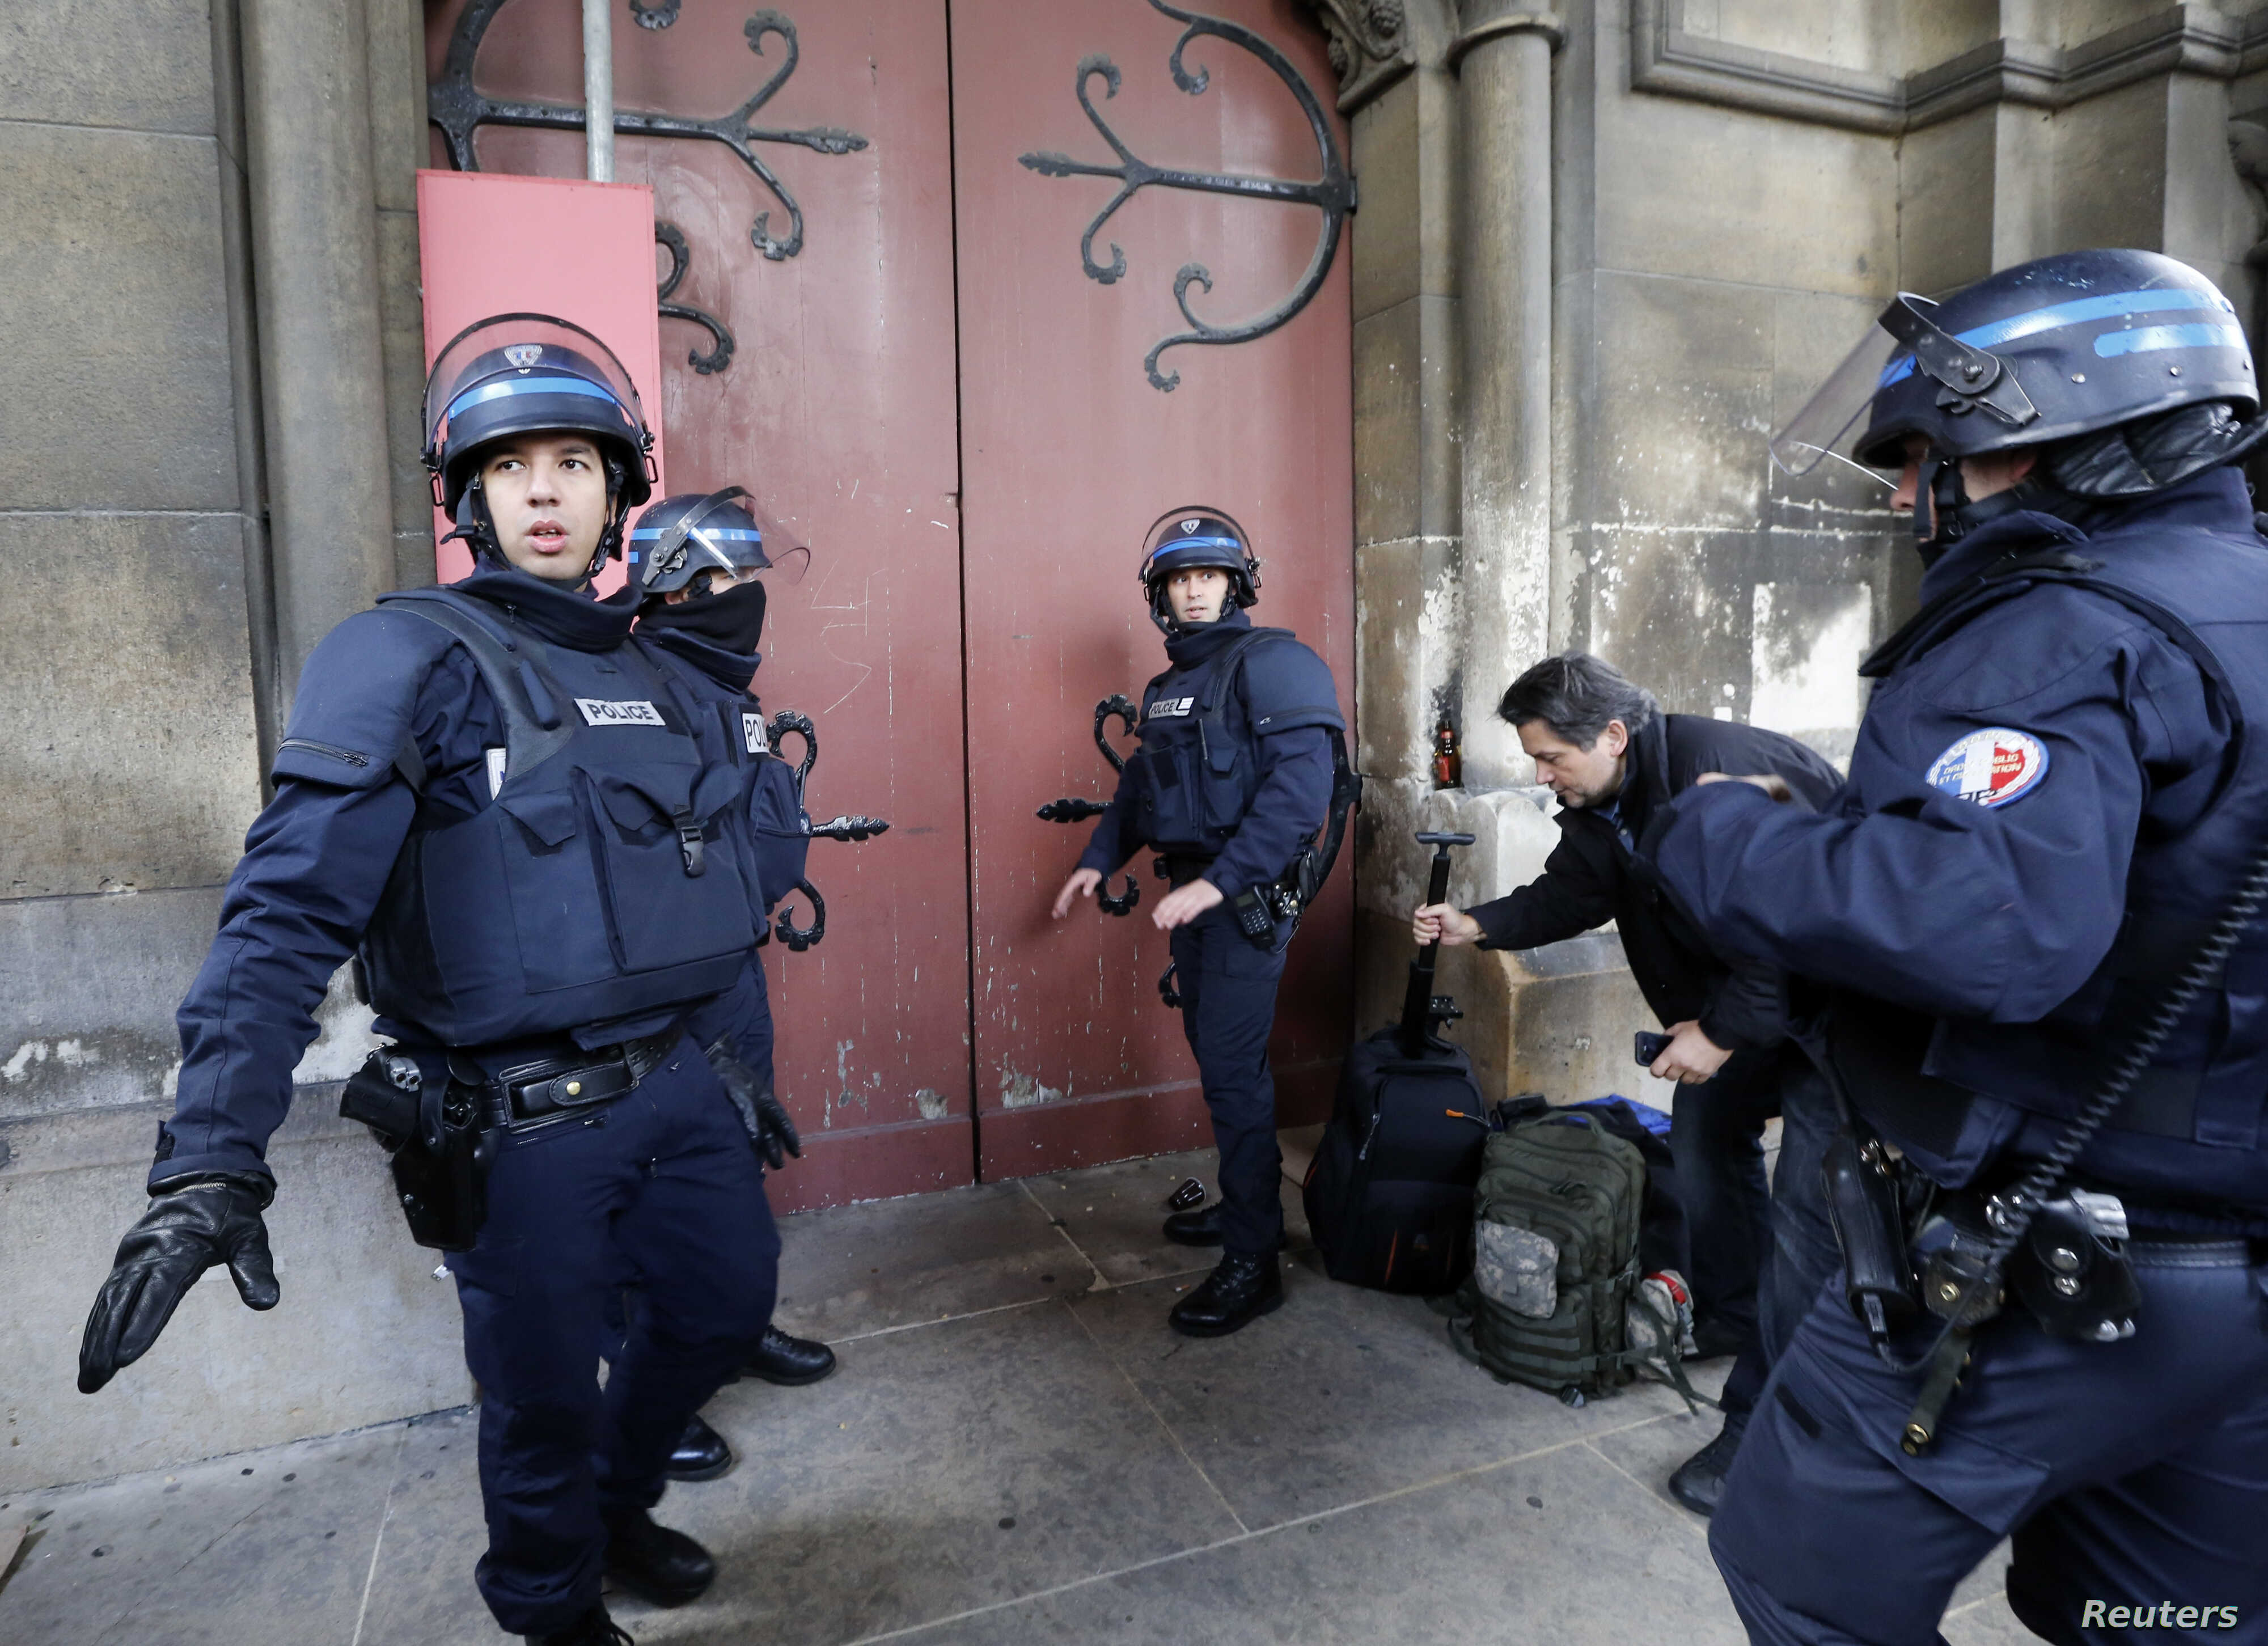 French police stand at the door of the Eglise Neuve church as they secure the area during an operation in Saint-Denis, near Paris, to catch fugitives from Friday night's deadly attacks in Paris, Nov. 18, 2015.